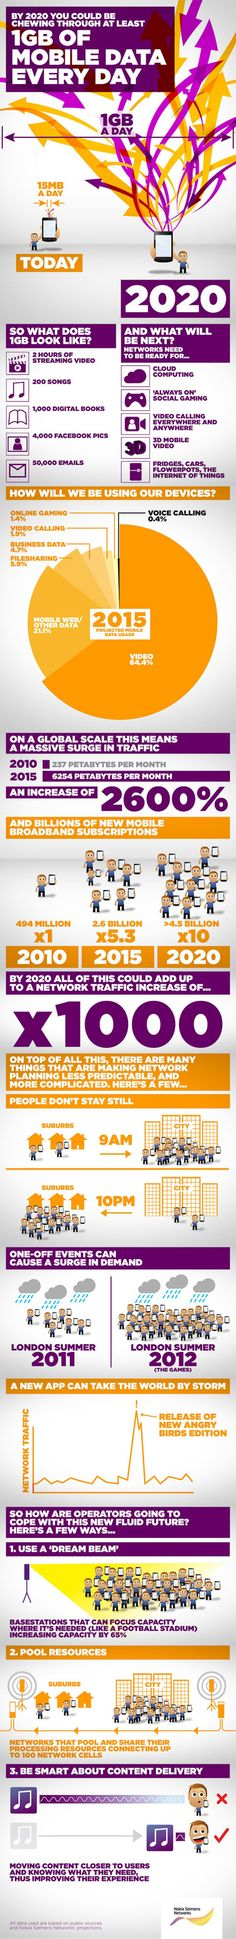 "Infographic: ""By 2020 You Could be Chewing Through at Least 1 GB of Mobile Data Every Day.""  Start saving your money now."